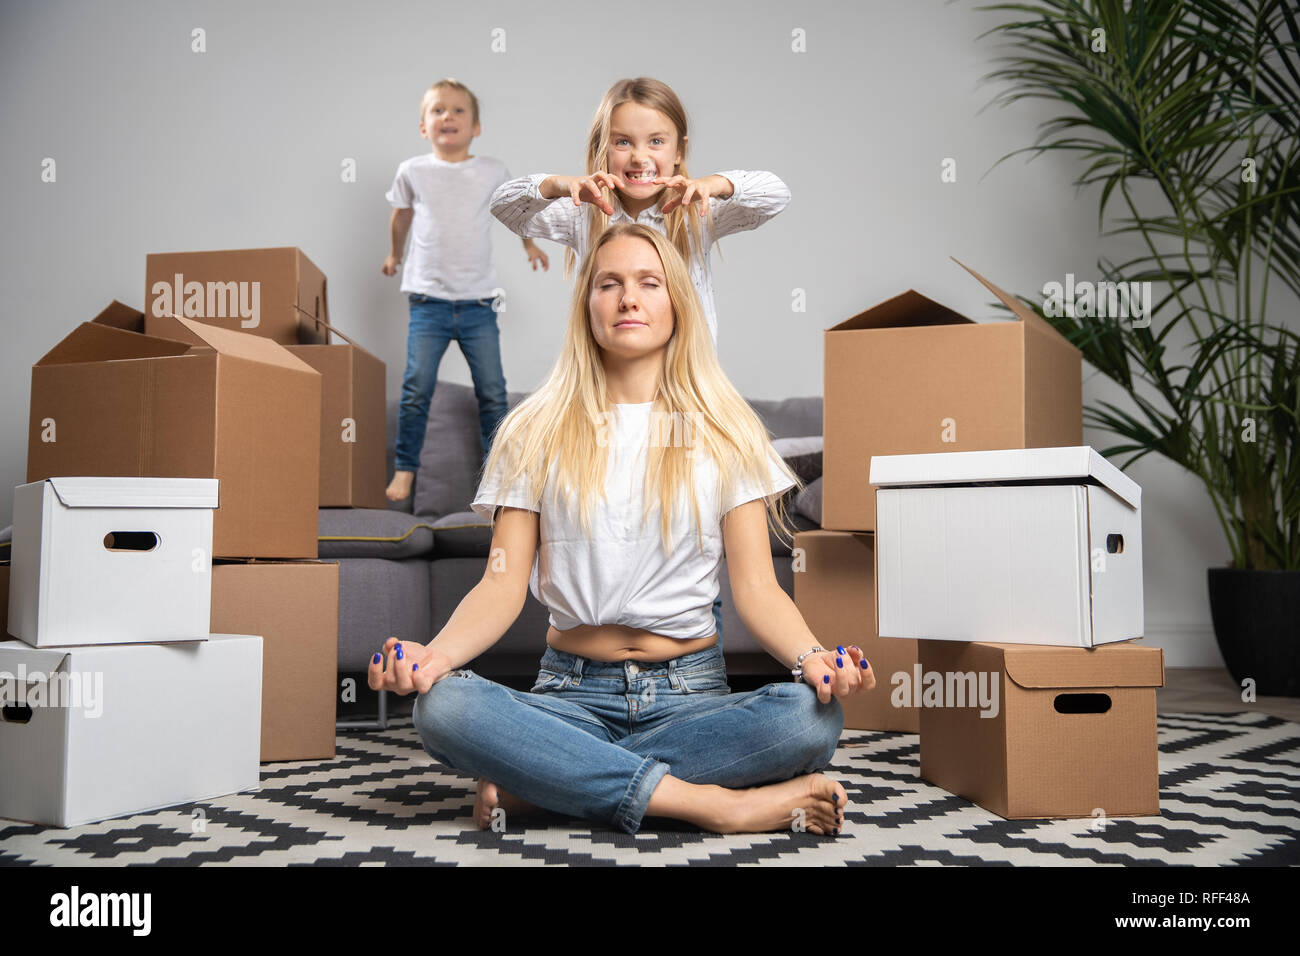 Photo of calm woman sitting on floor among cardboard boxes and boy, girl jumping on sofa - Stock Image